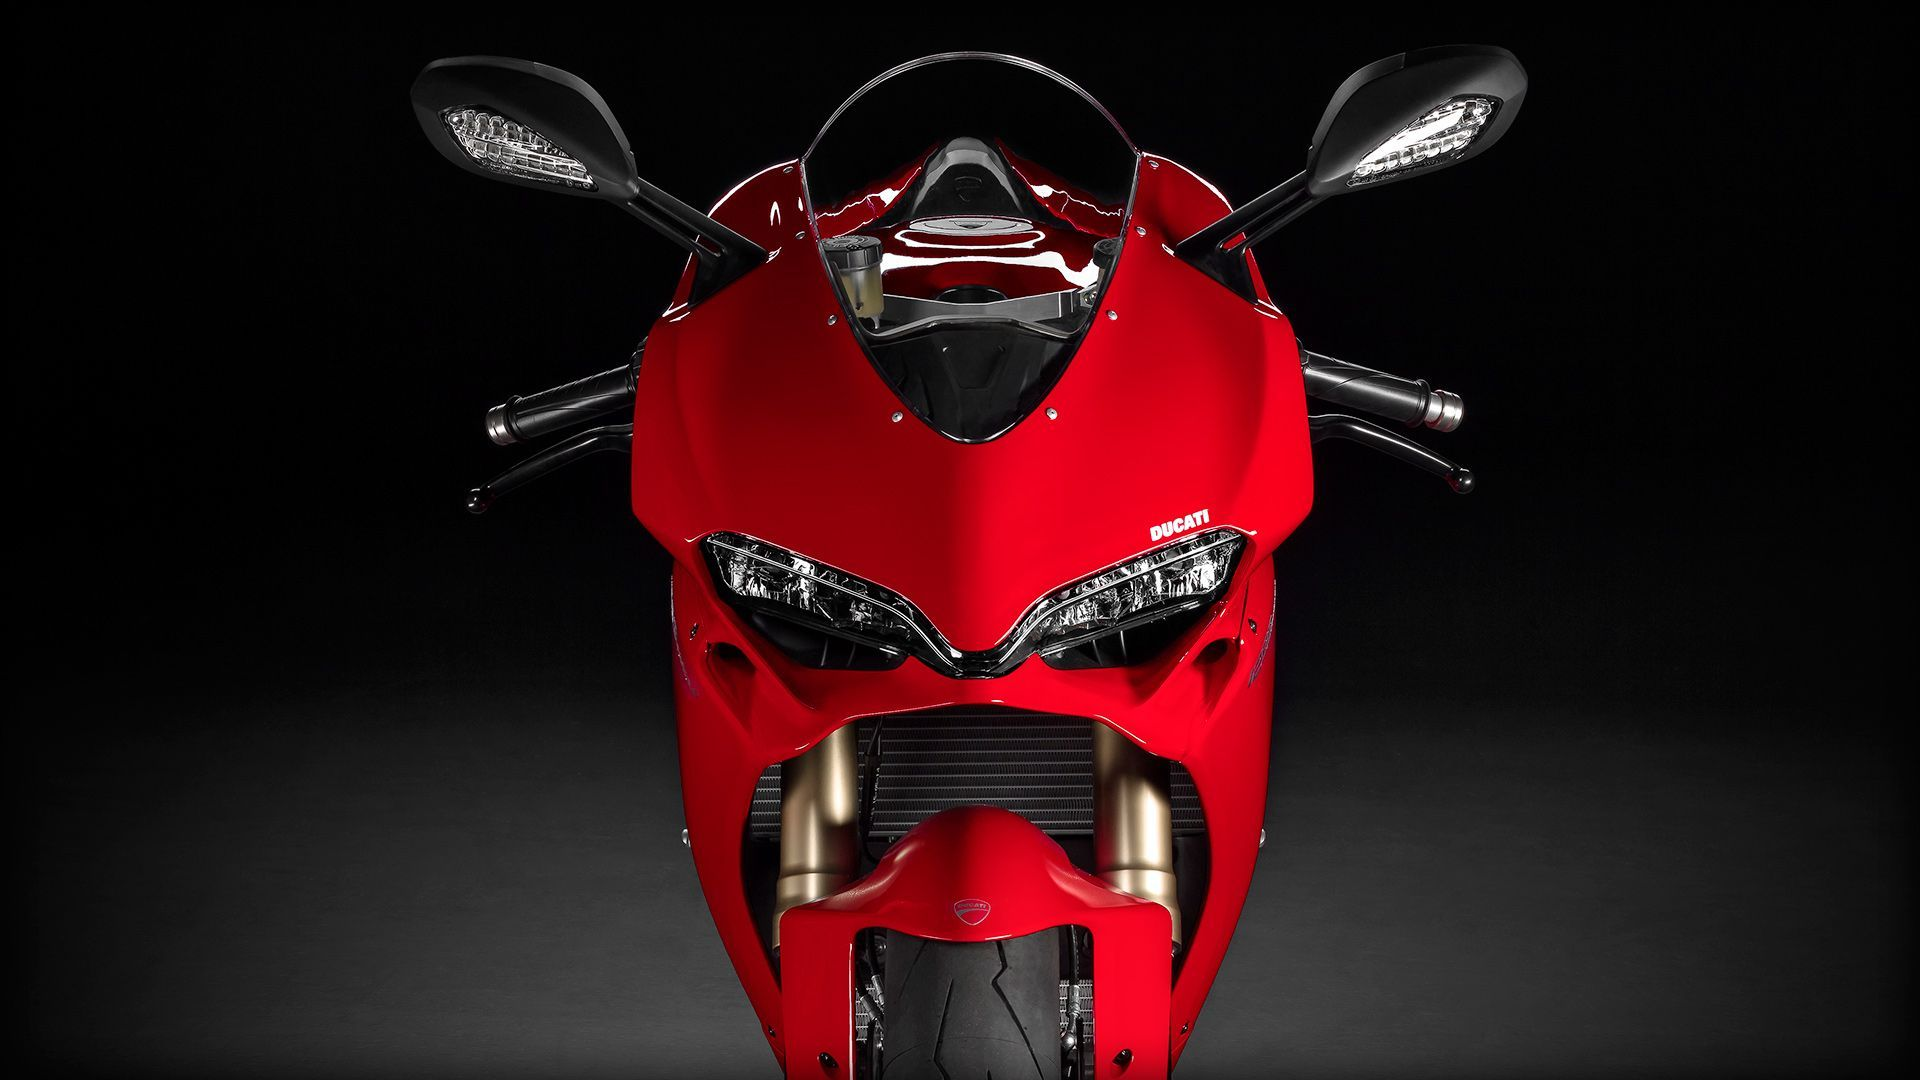 2015 Ducati 1299 Panigale | 1299 Panigale - Front